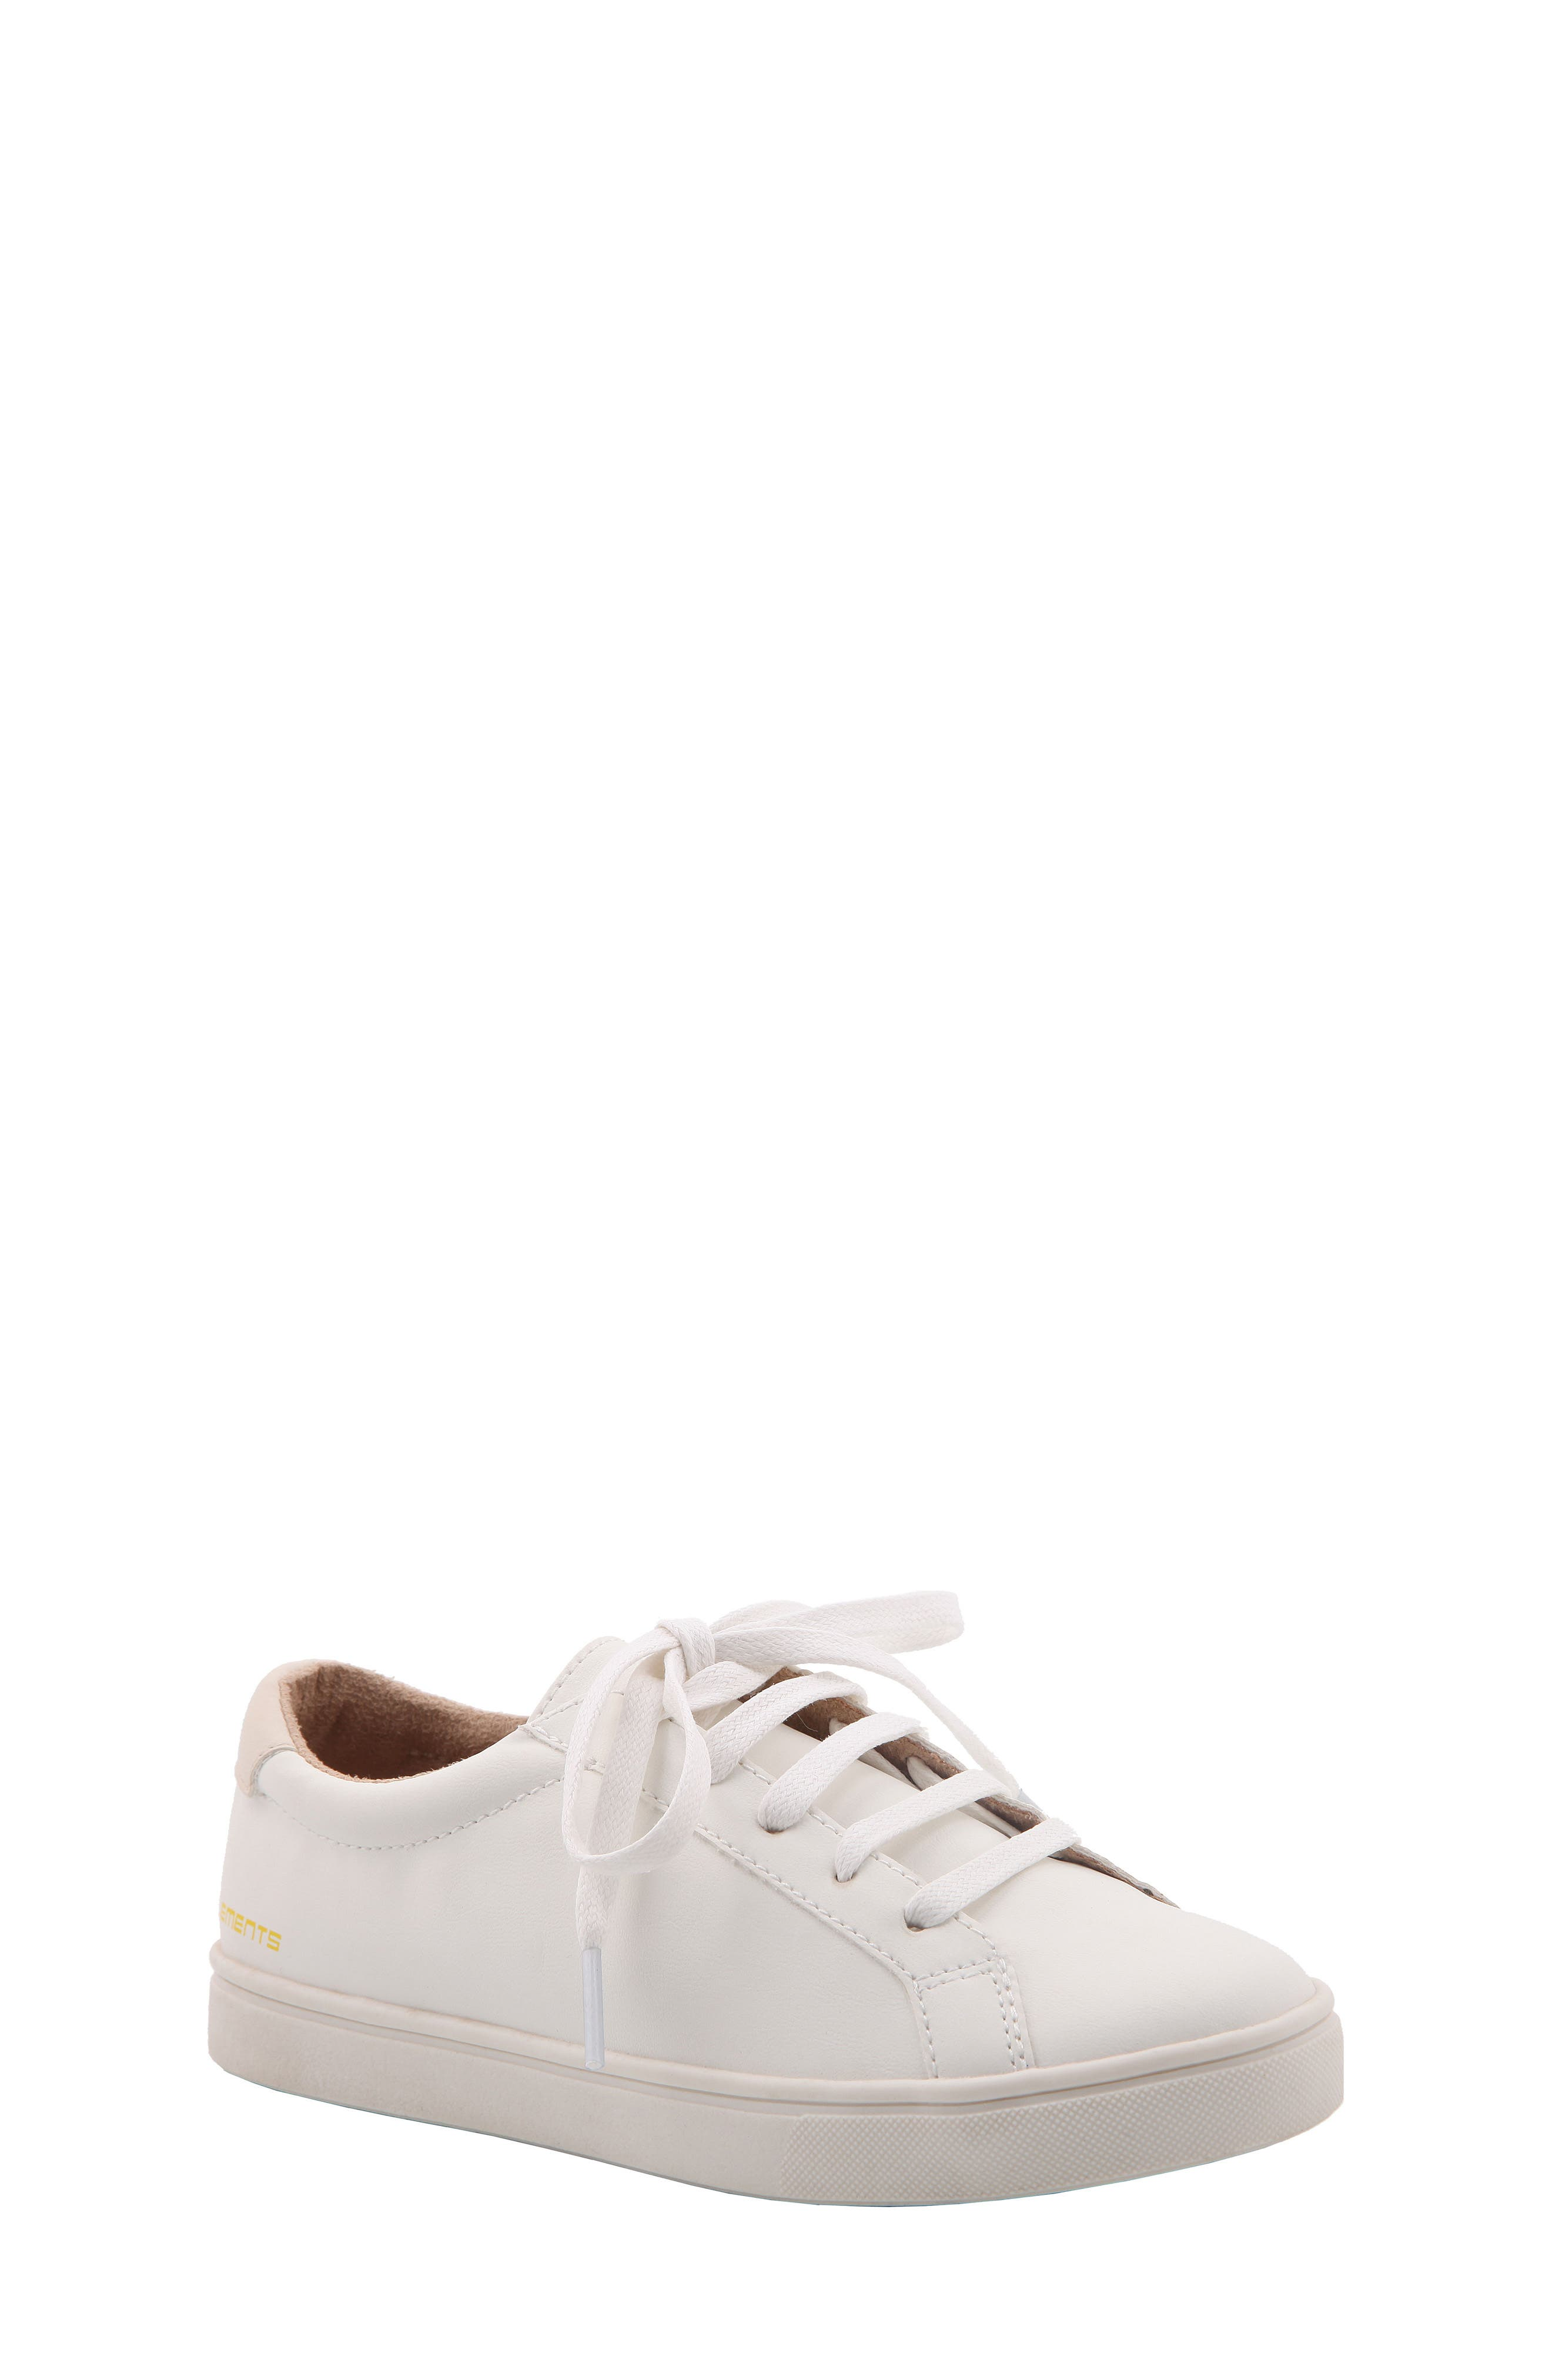 Chaz Sneaker,                         Main,                         color, White Faux Leather